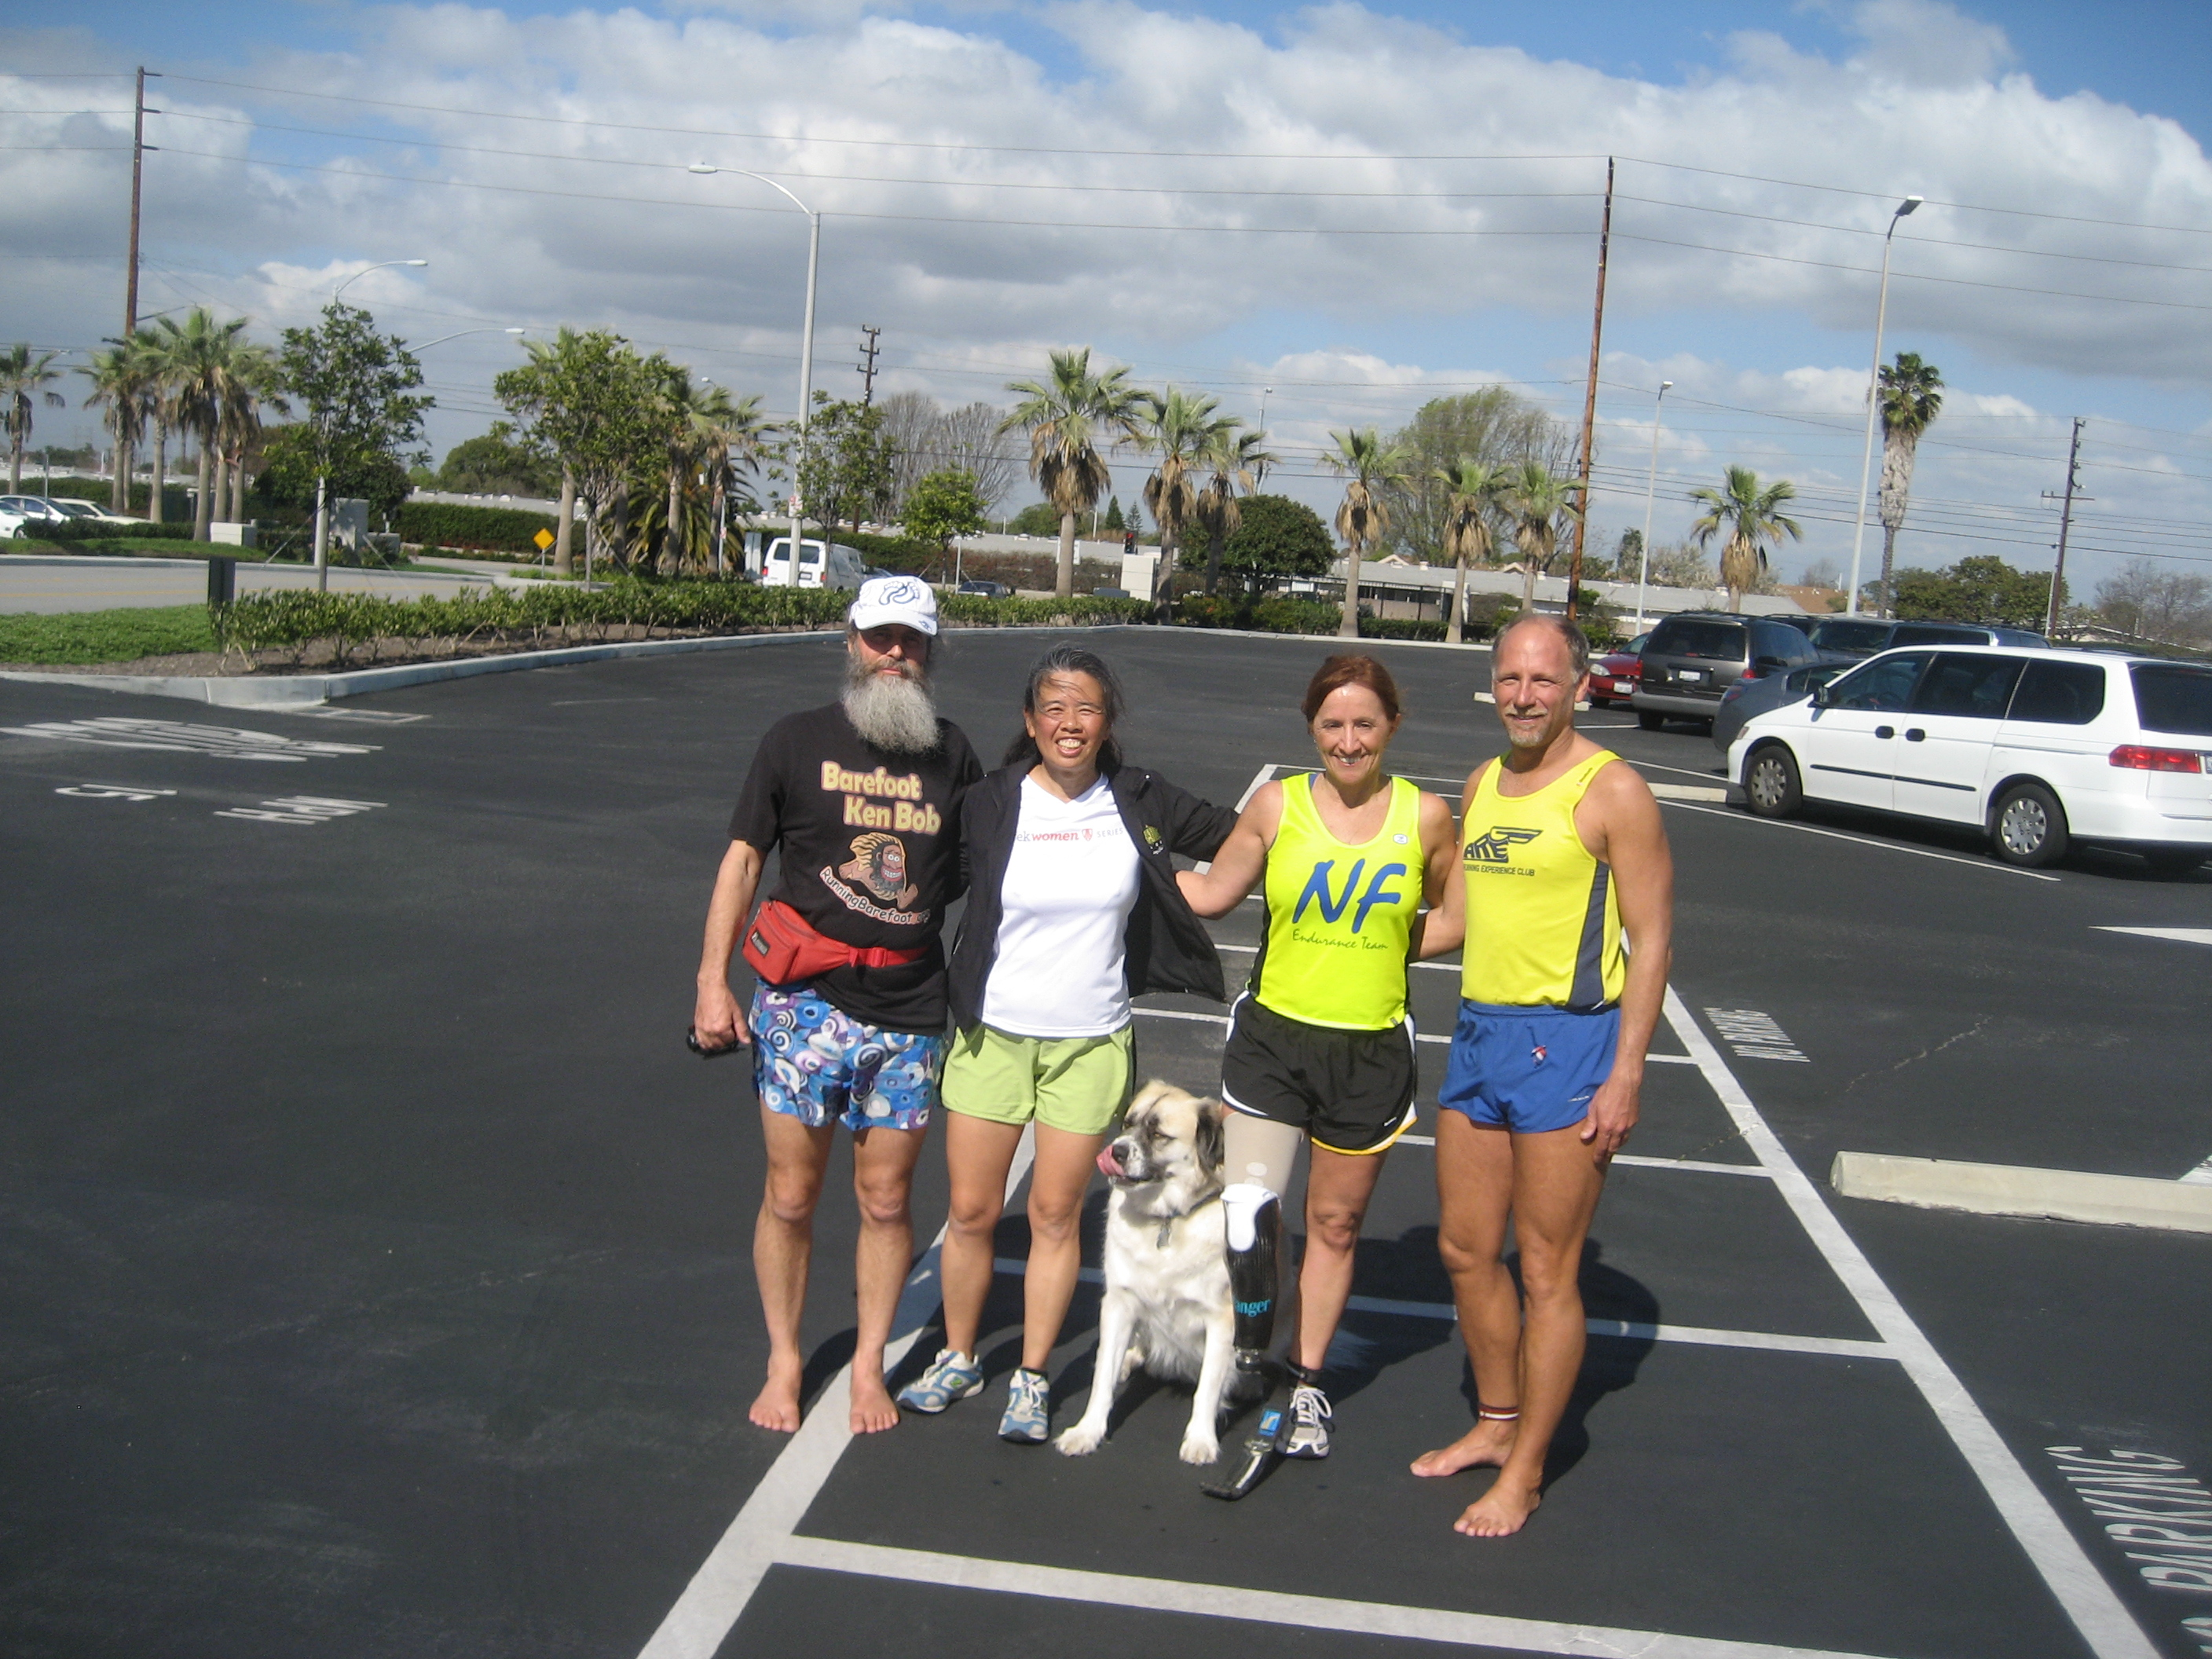 What has 12 legs and wears 3 shoes? Ken Bob, Cathy, Herman, Melisa, and Todd (2010 February 8) Boeing 5K Seal Beach CA